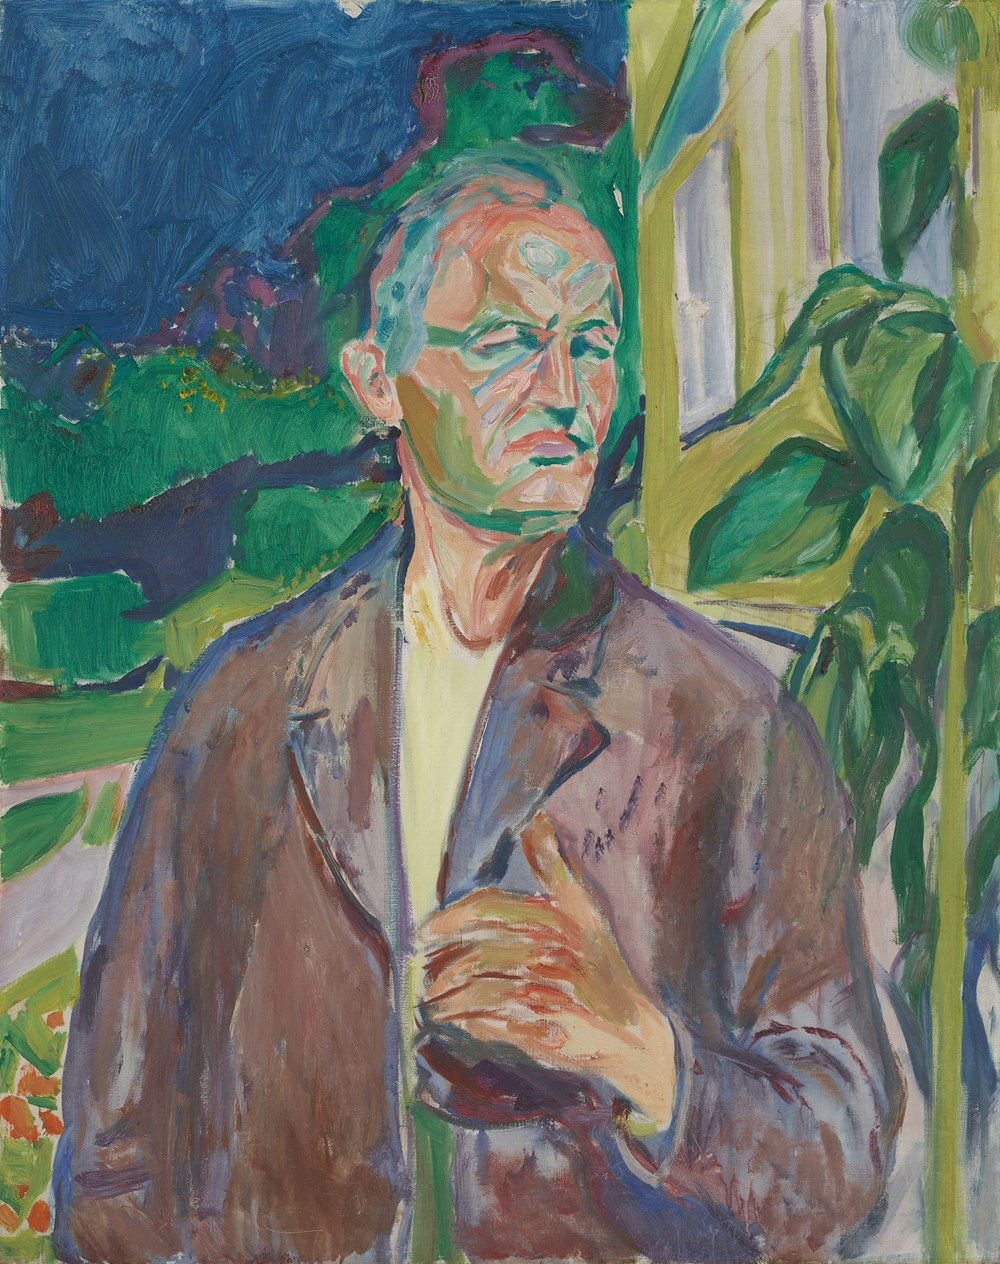 Edvard Munch: Self-Portrait in Front of the House Wall. Oil on canvas, 1926. Photo © Munchmuseet